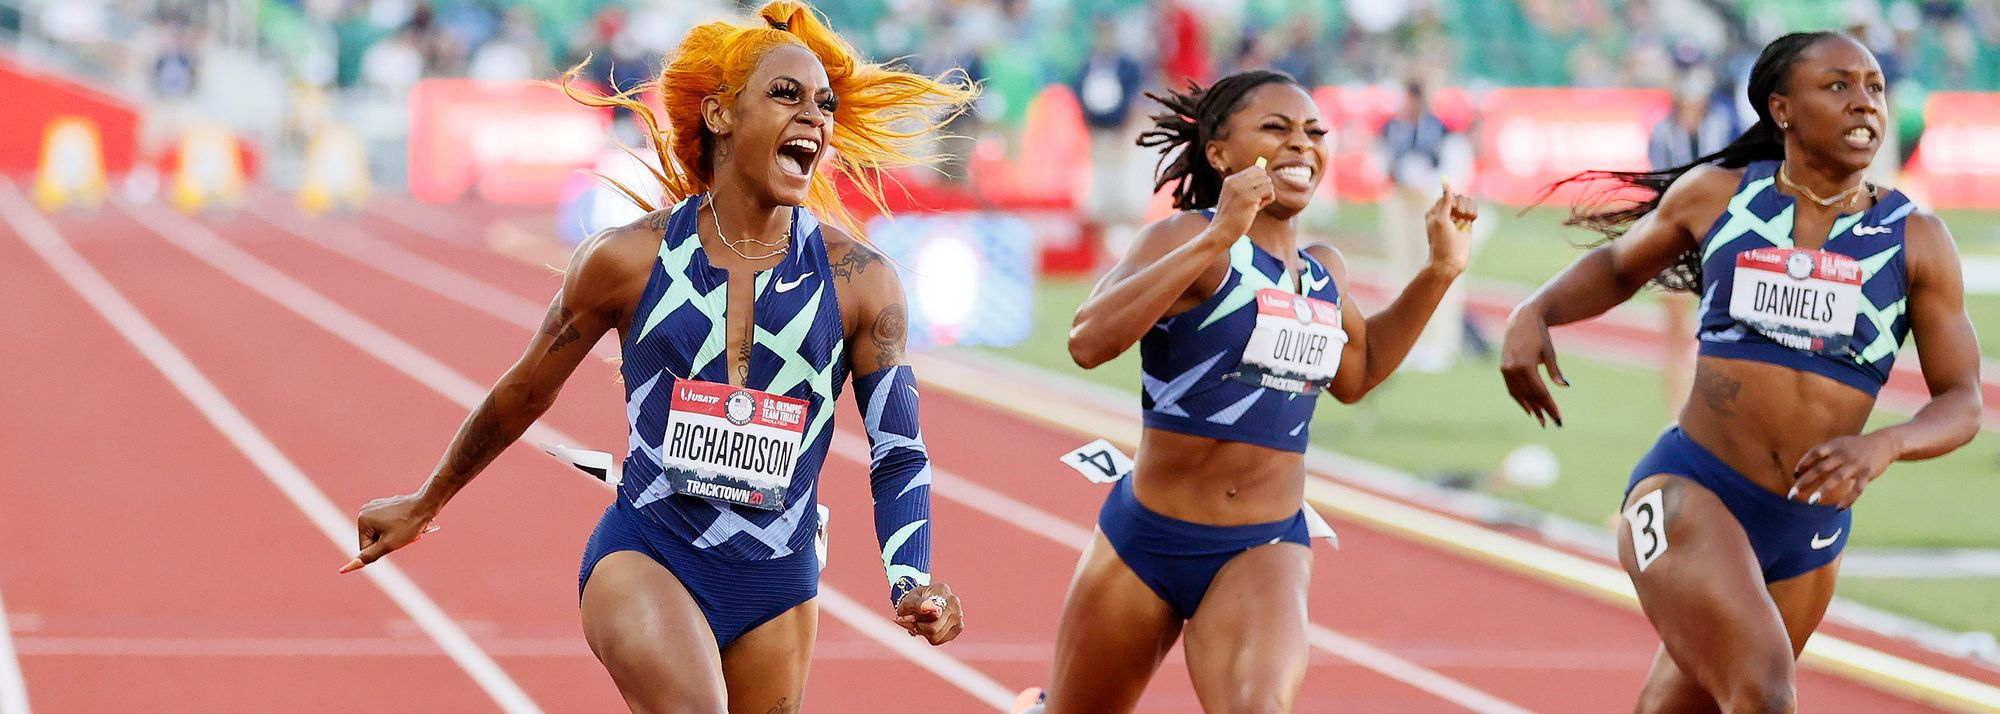 Sprinter Sha'Carri Richardson and discus thrower Valarie Allman won their respective events on the second day of action at the US Olympic Trials in Eugene on Saturday (19), booking their spots at what will be their first Olympic Games.